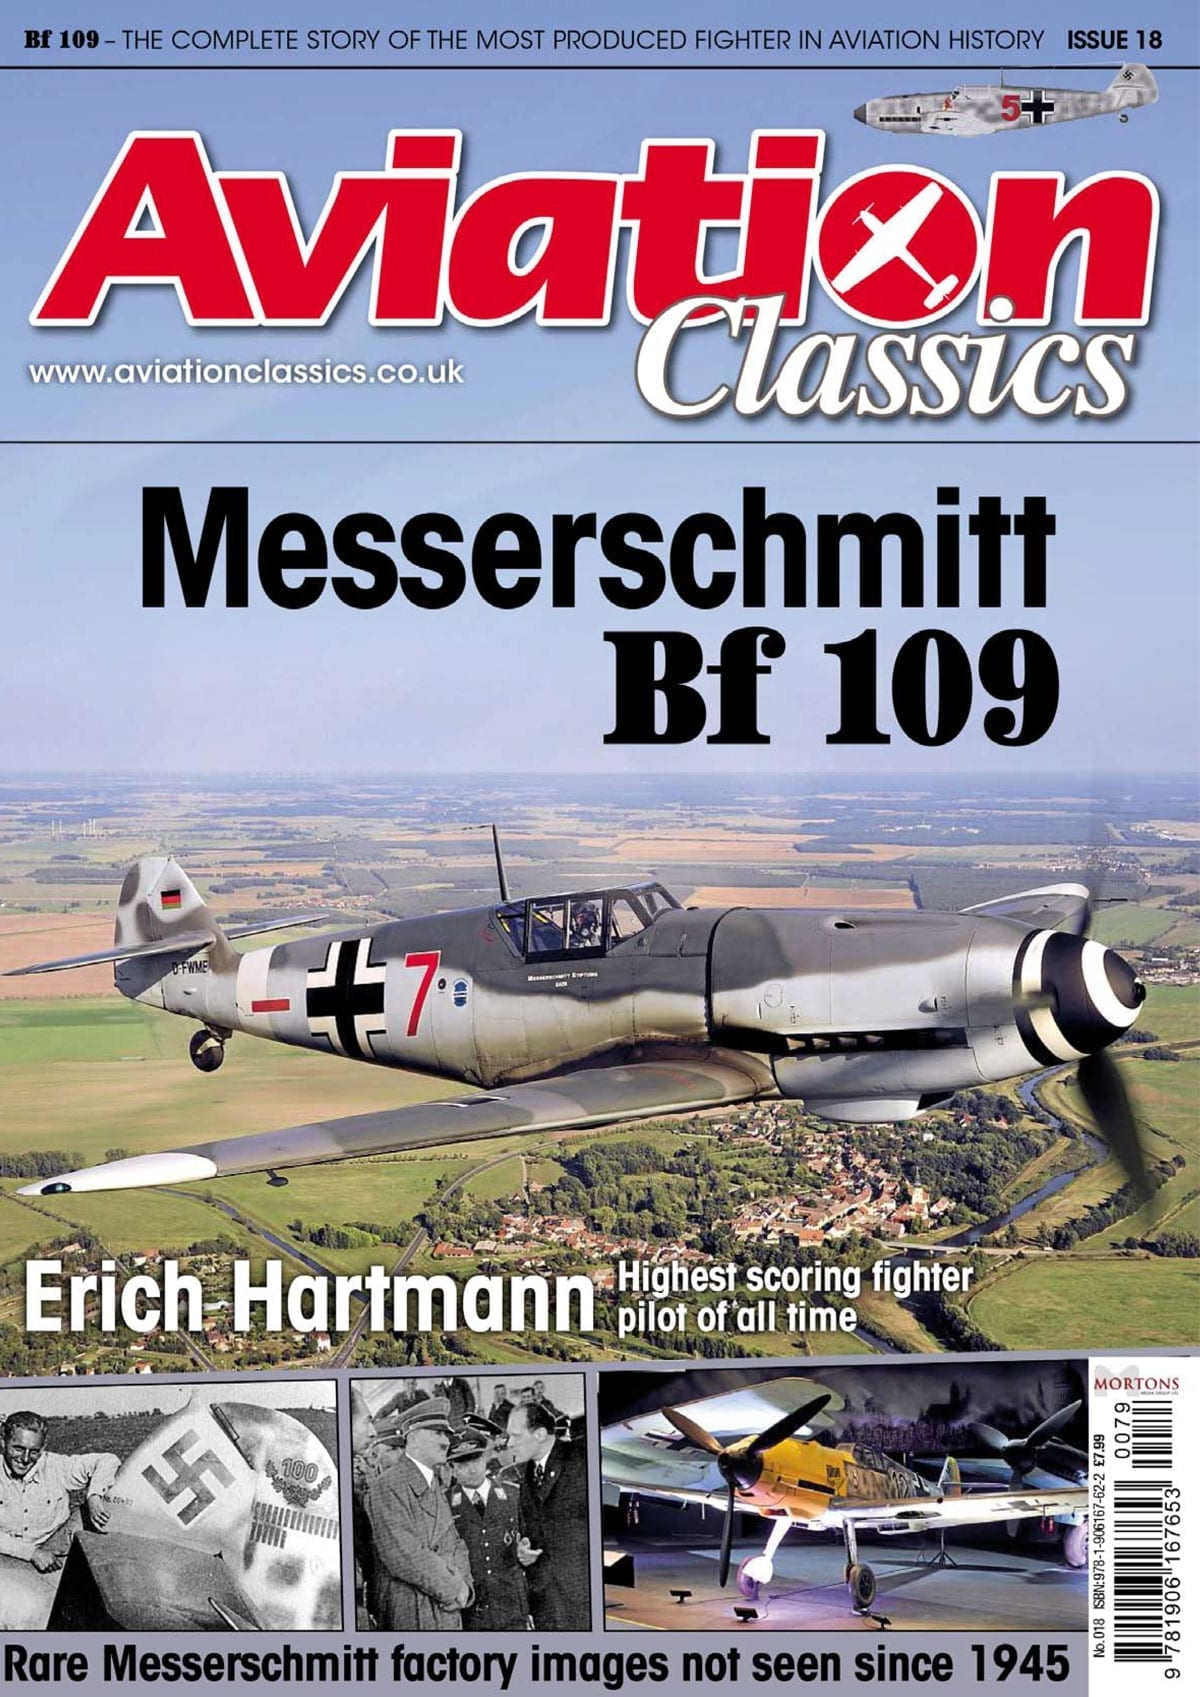 Aviation Classics - Messerschmitt Bf 109